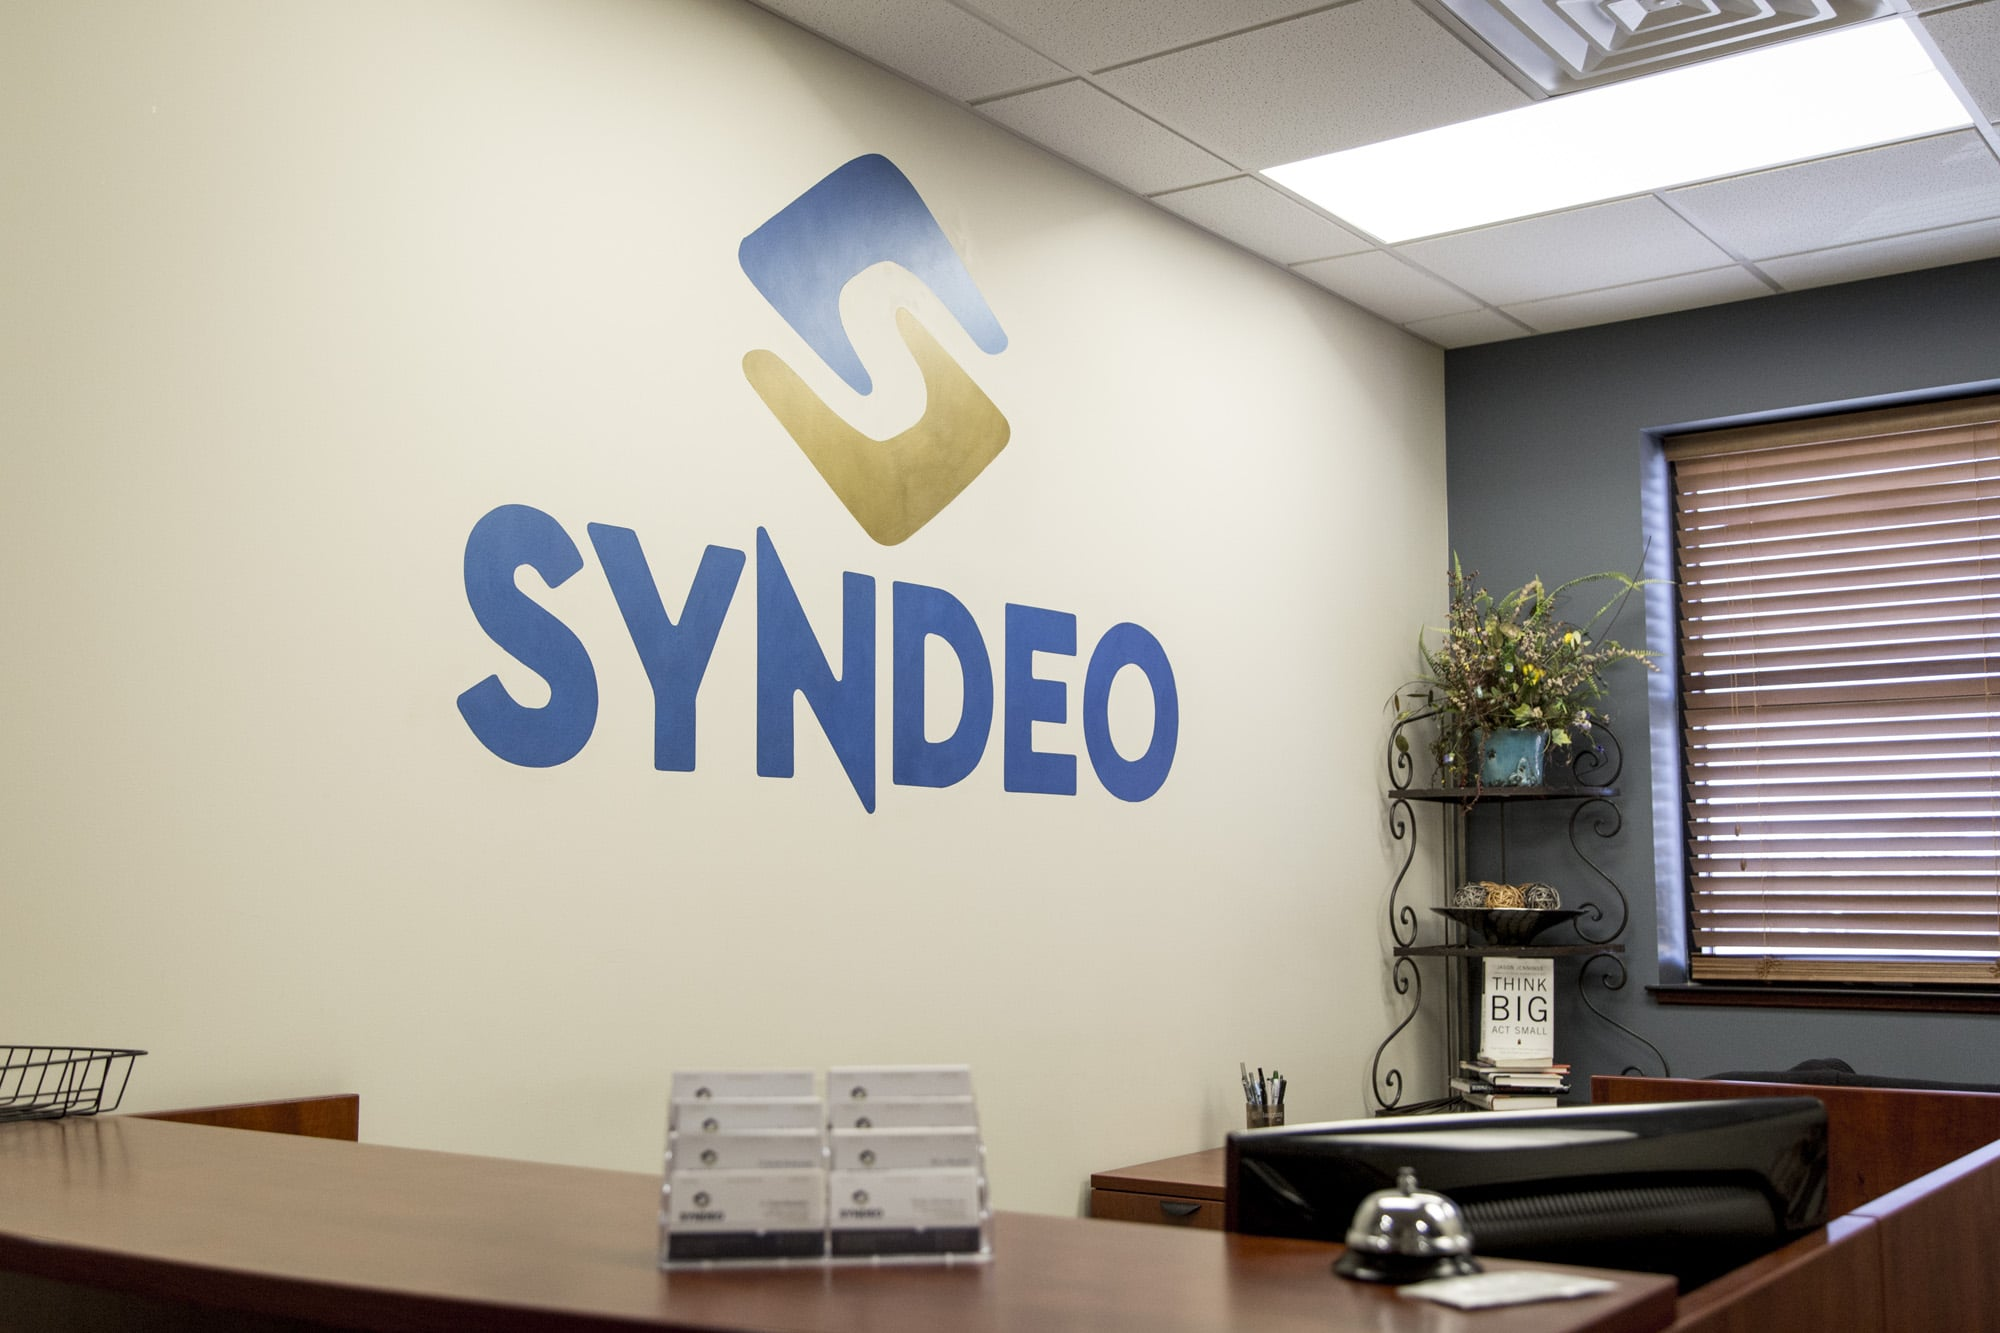 Syndeo Outsourcing Selected For the Inc. 5000 List